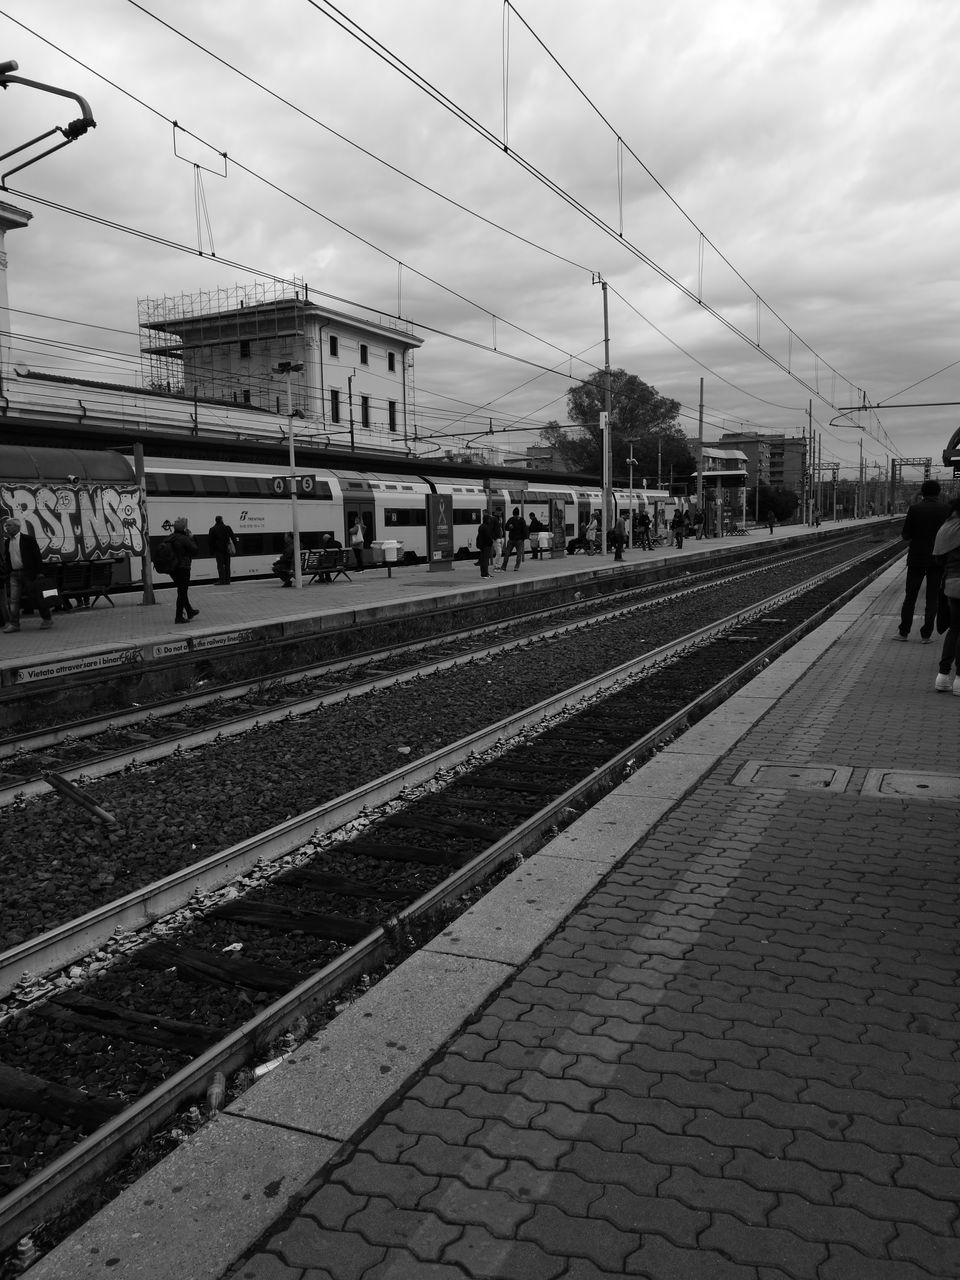 transportation, railroad track, rail transportation, real people, public transportation, railroad station platform, sky, cable, travel, railroad station, day, men, women, outdoors, architecture, large group of people, people